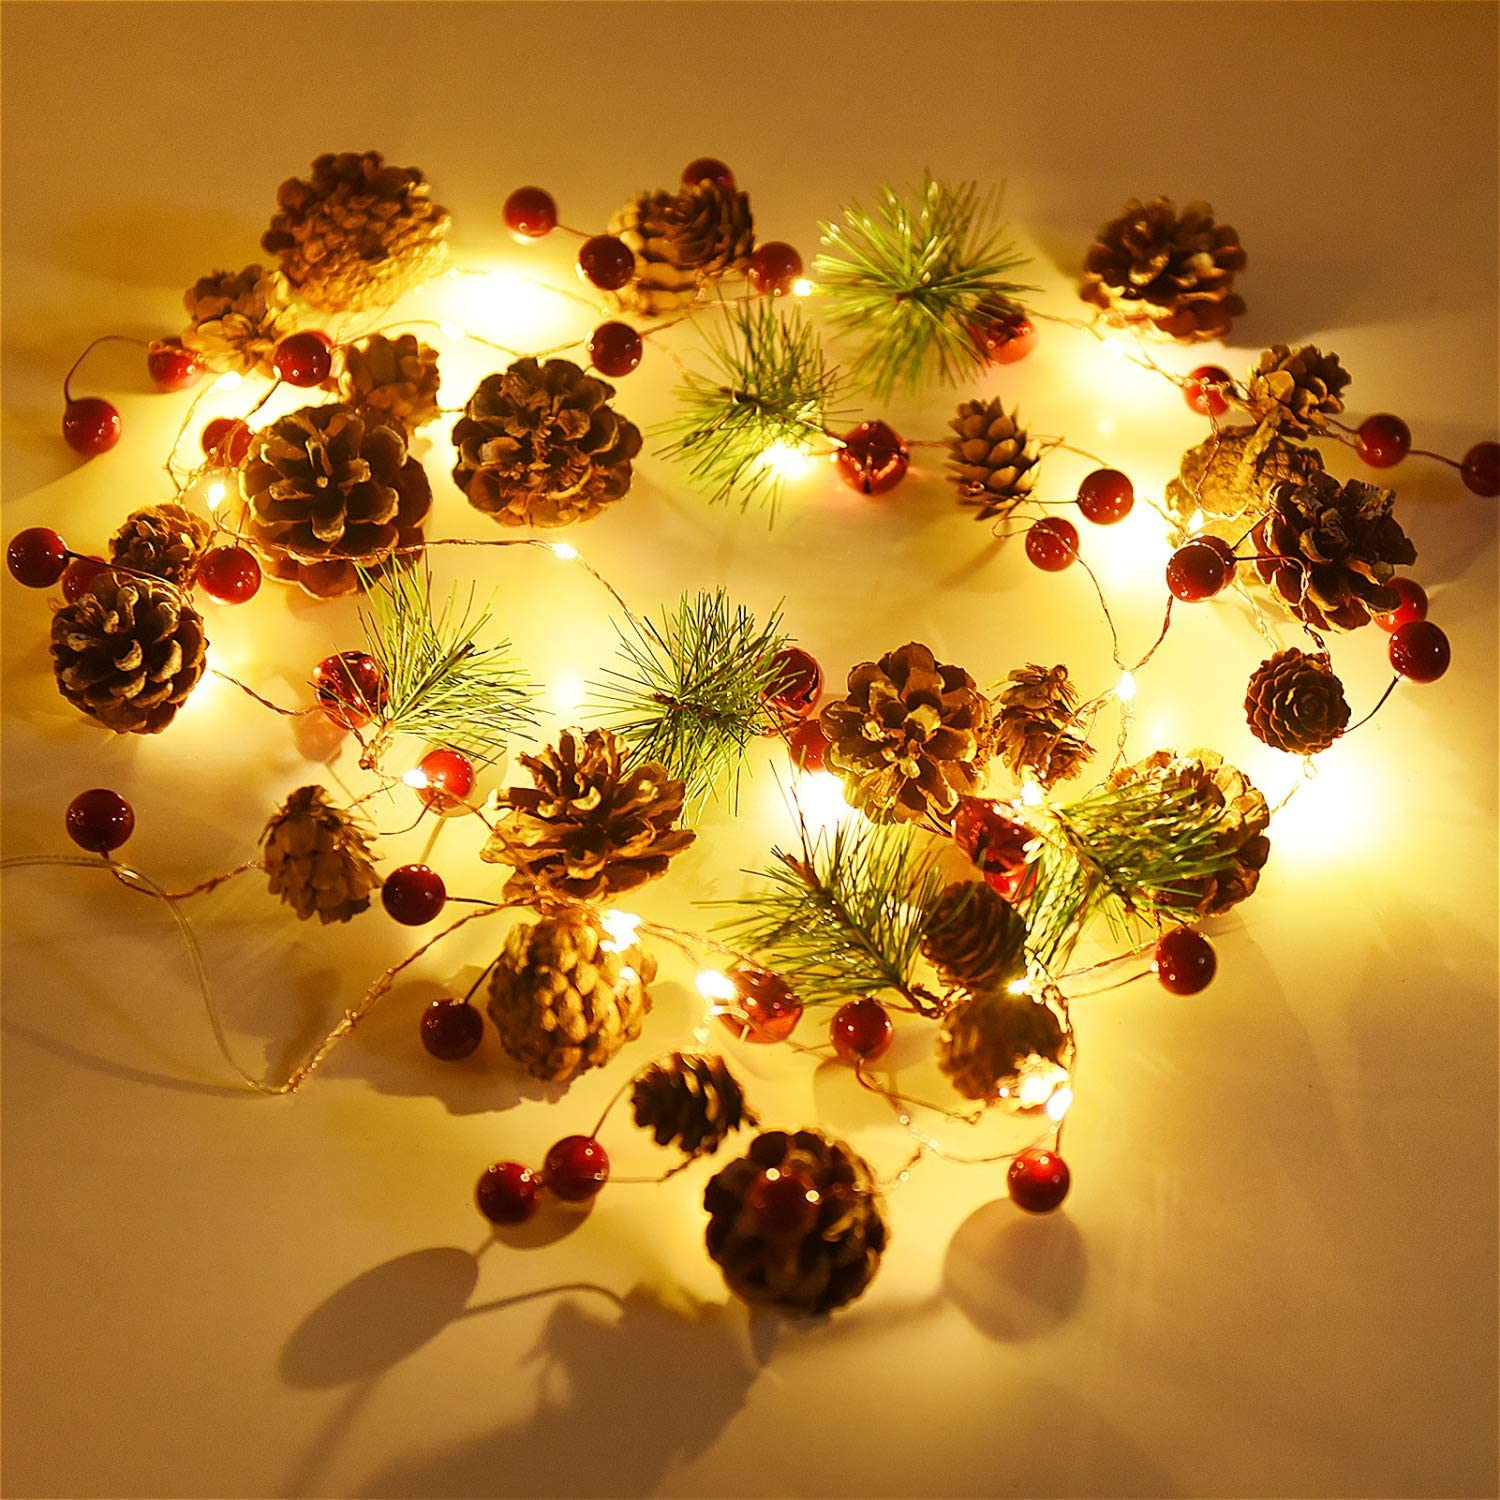 Rocinha Christmas Garland with Lights Battery Operated, 7.2 Ft 20 LED Berry Pine Cone String Lights - Lighted Winter Garland for Holiday, Pre-Lit Xmas, Home, New Year, Outdoor Indoor Used